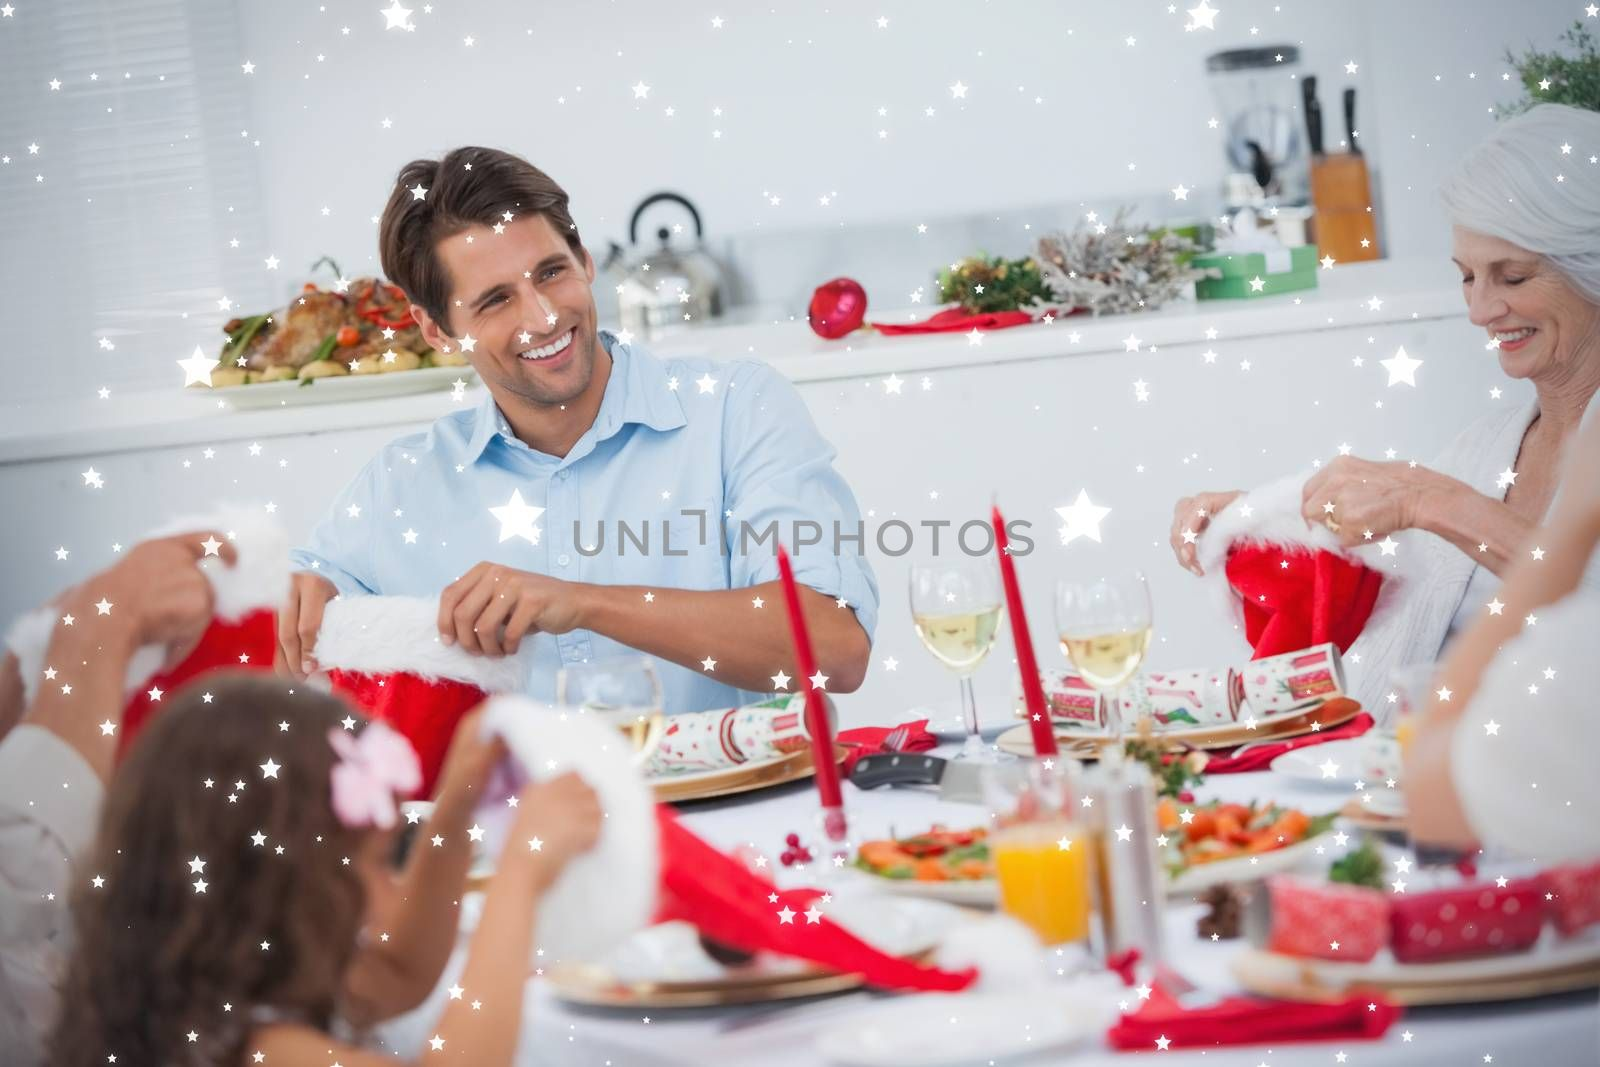 Composite image of Cheerful family dining together against snow